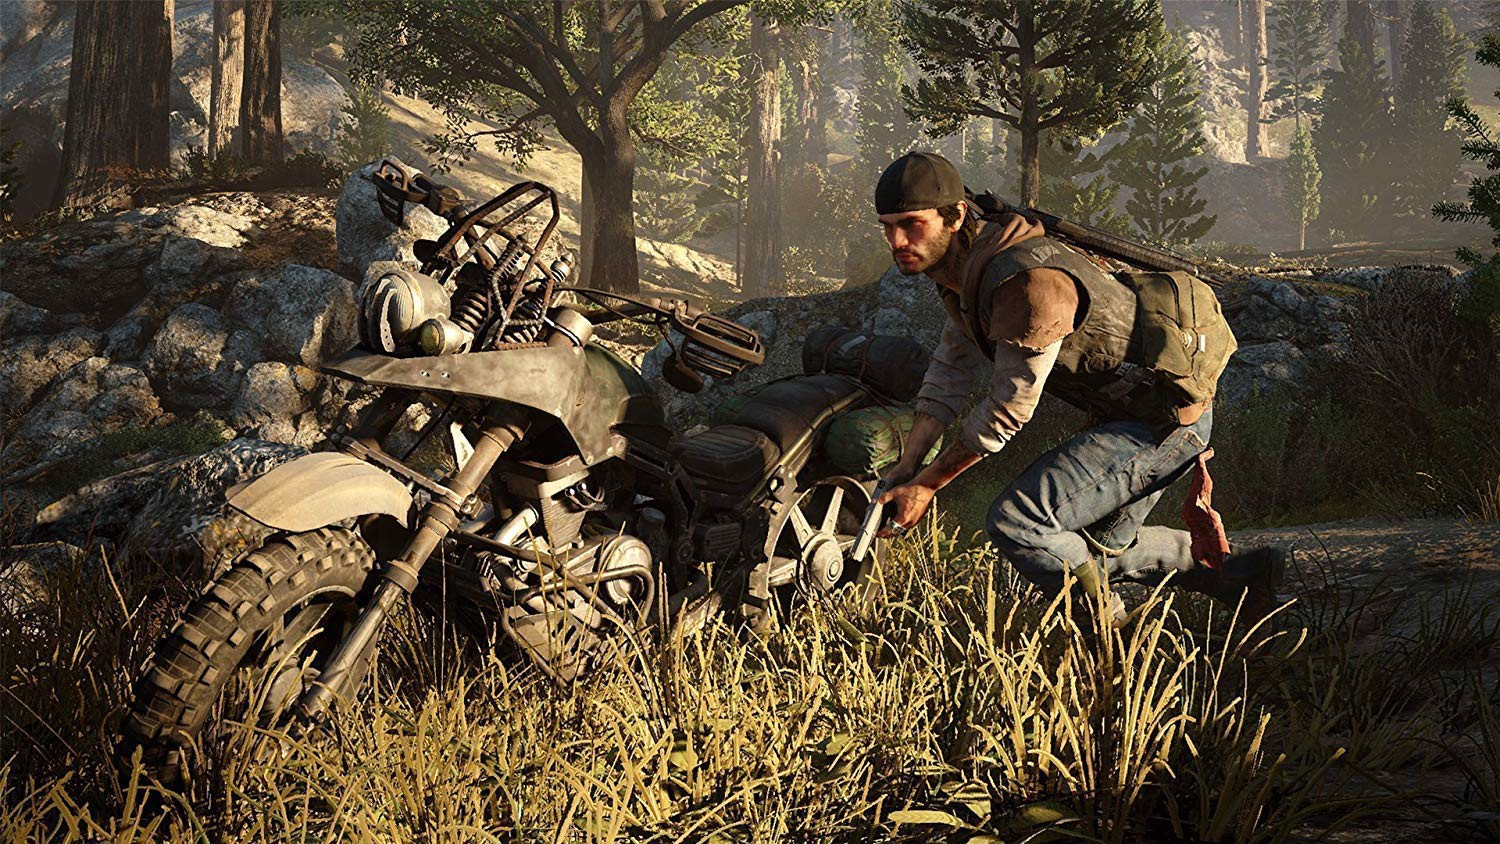 719 - Days Gone Collector's Edition